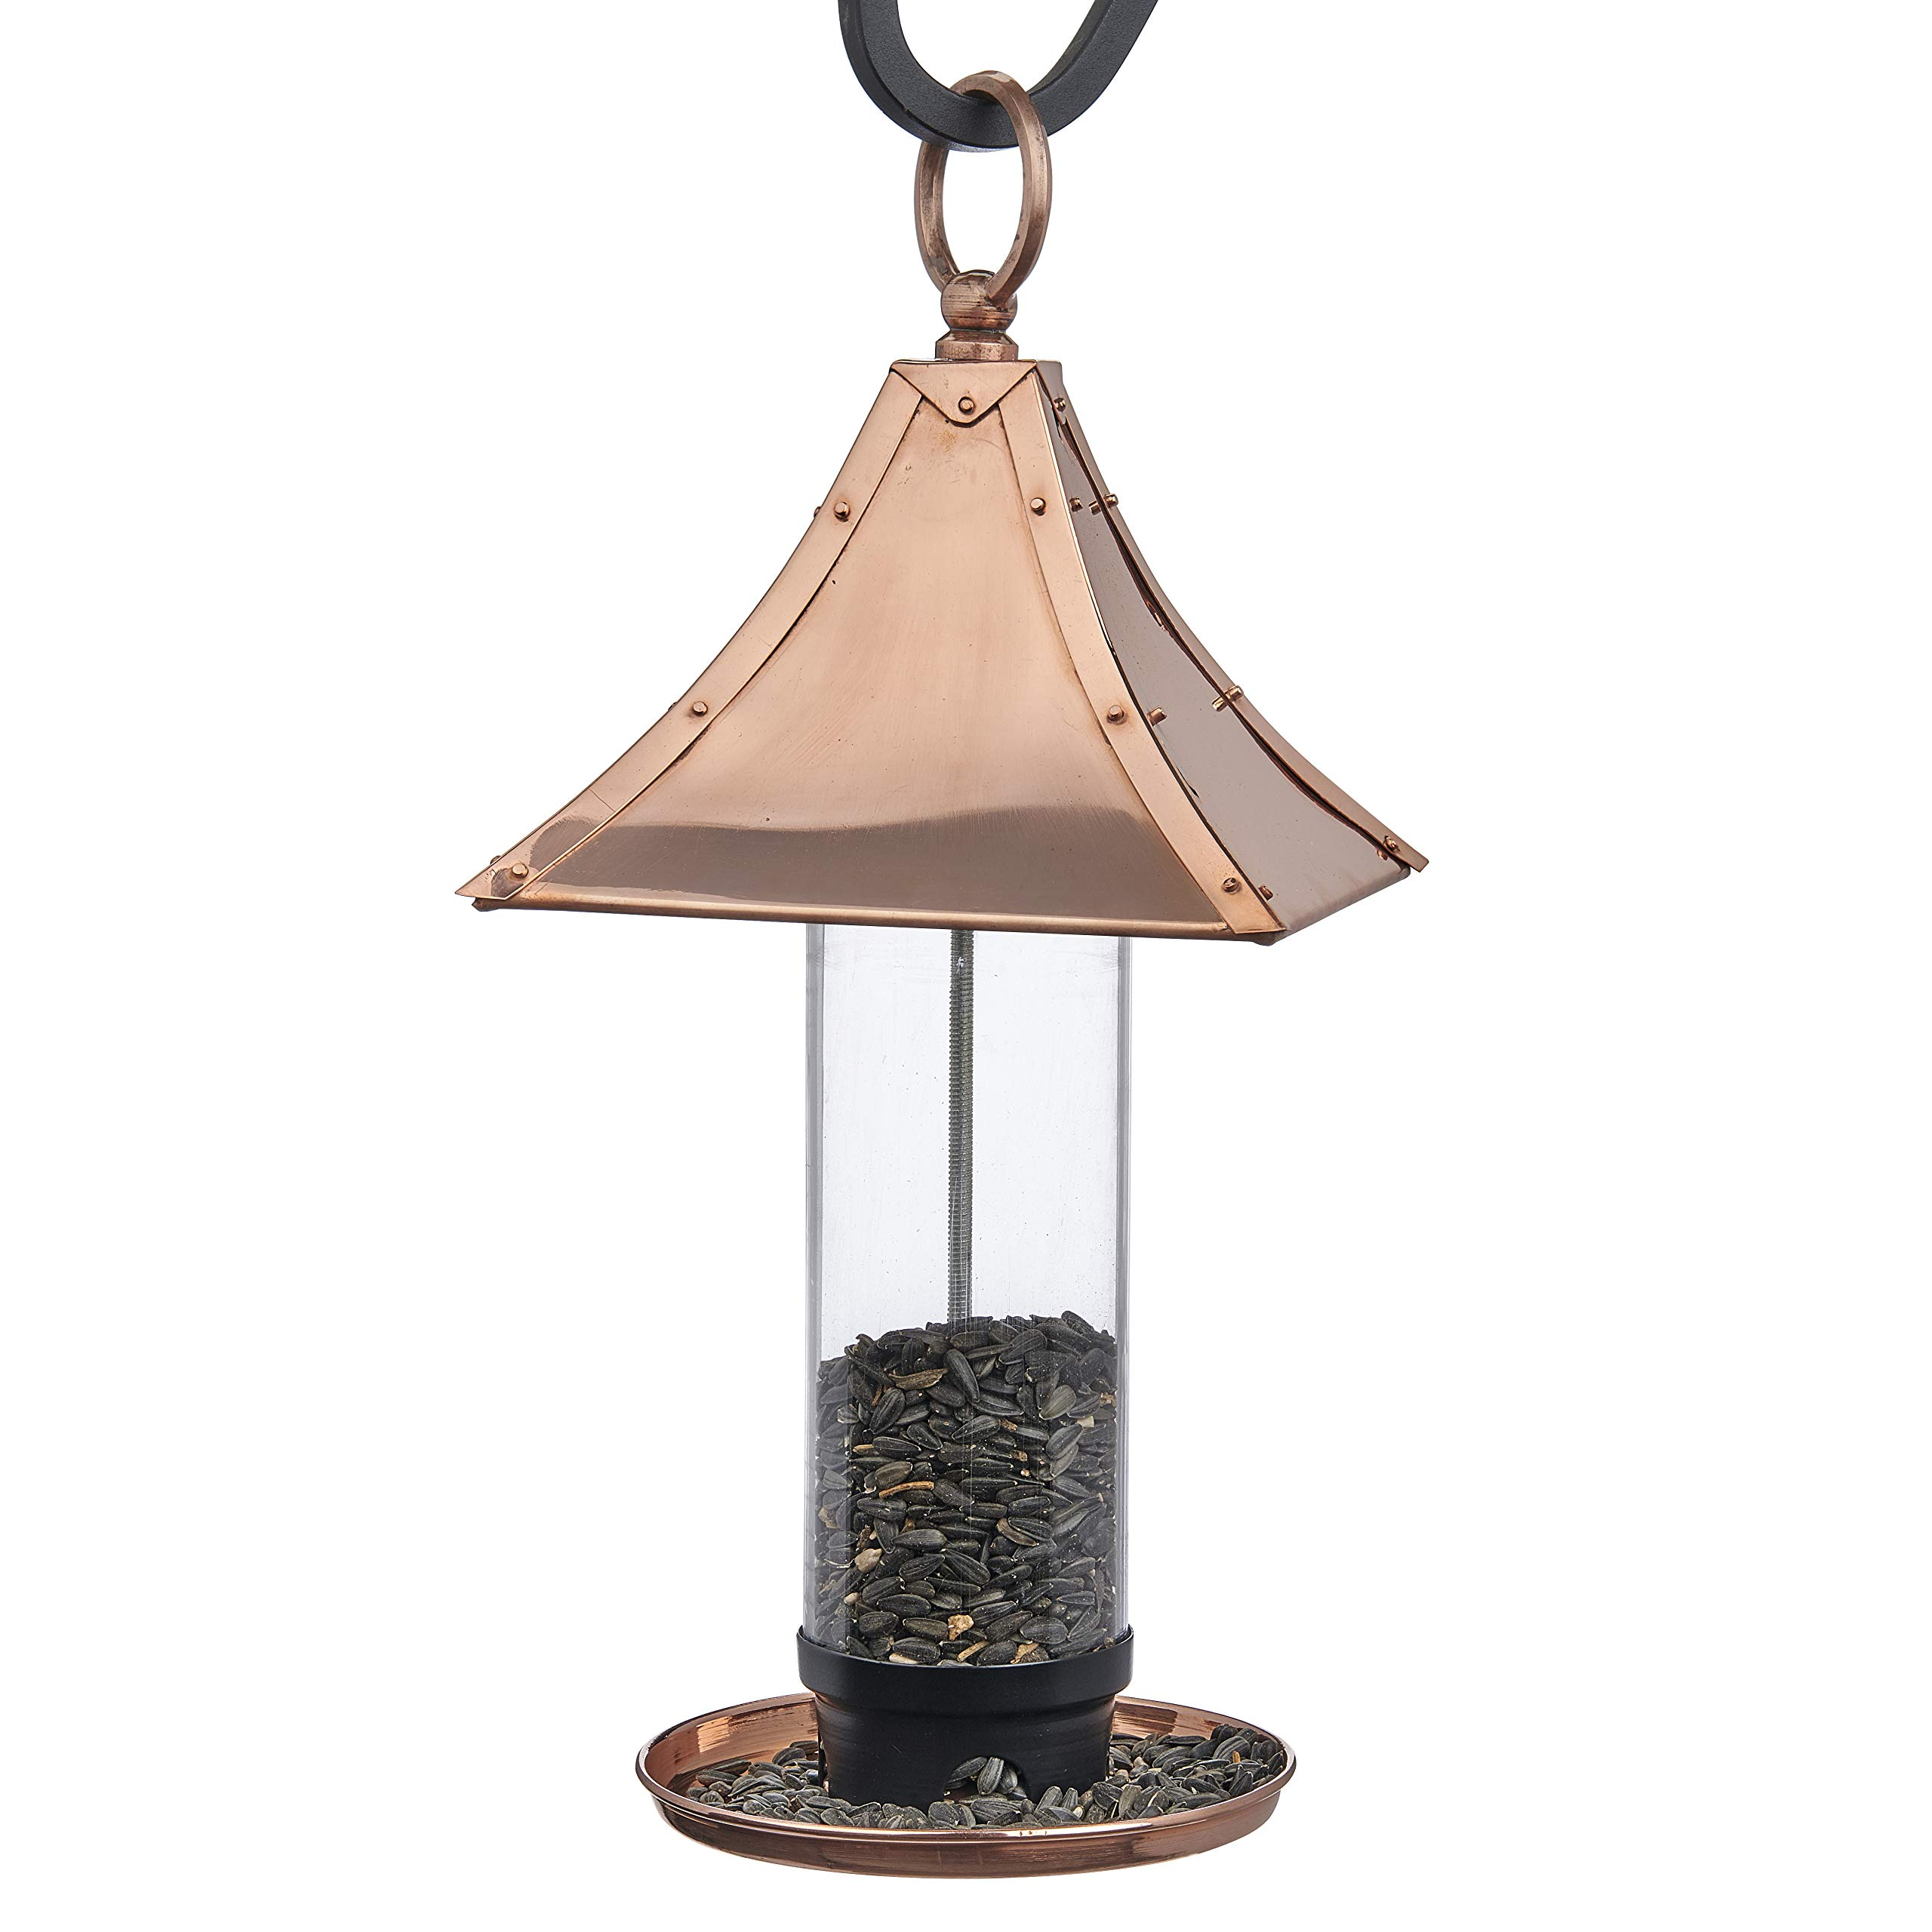 Good Directions T01P Palazzo Bird Feeder, Polished Copper